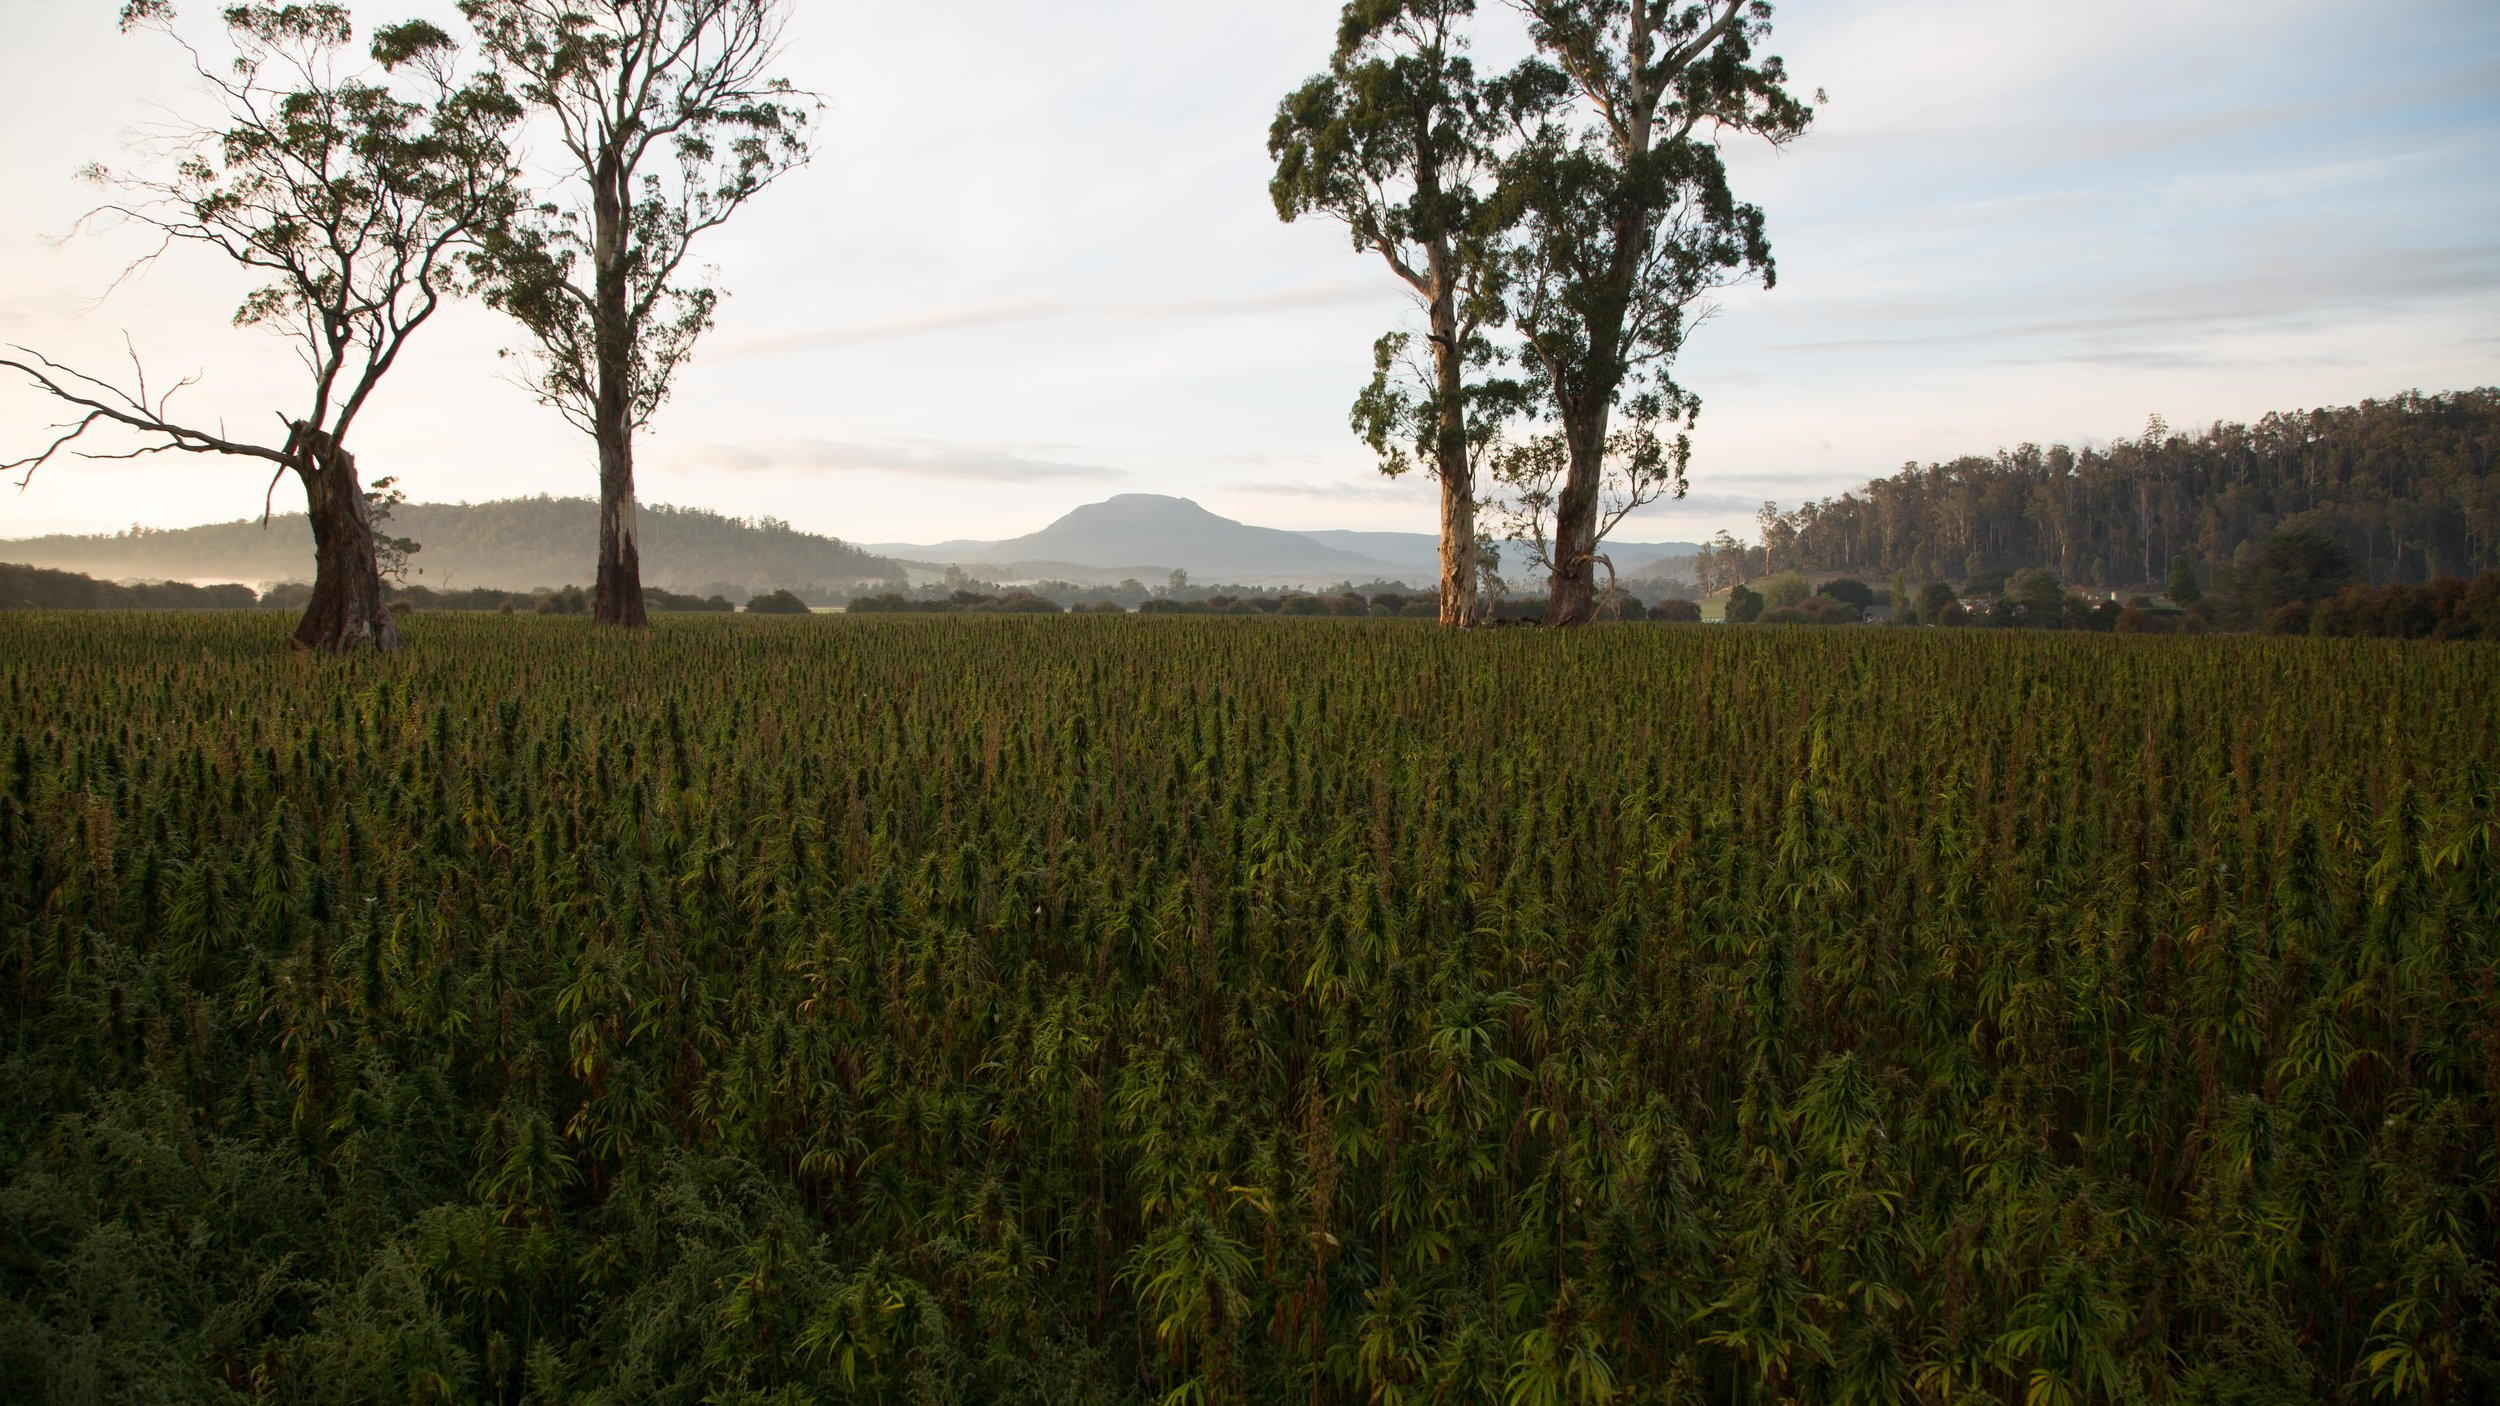 Each product can be traced back to the idyllic Tasmanian farmland where it was grown